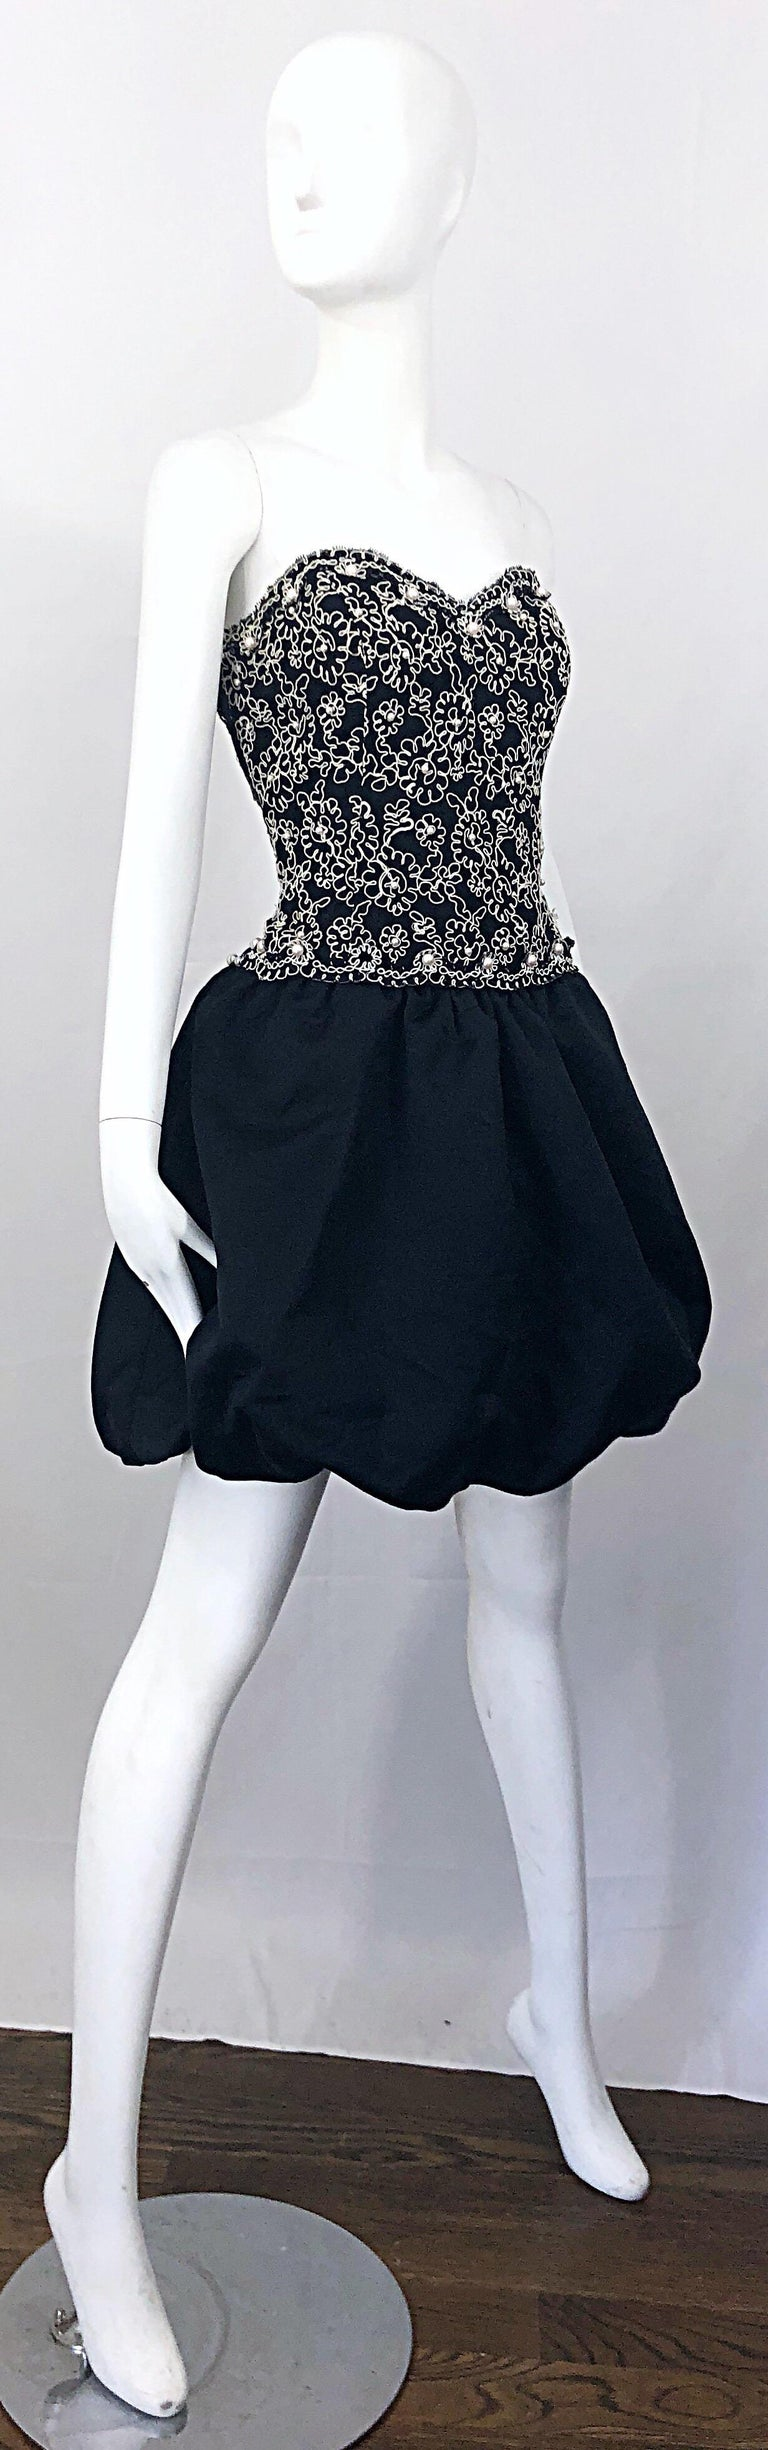 Chic 1980s Size 12 Strapless Pearl Encrusted Black and White Pouf Vintage Dress For Sale 4